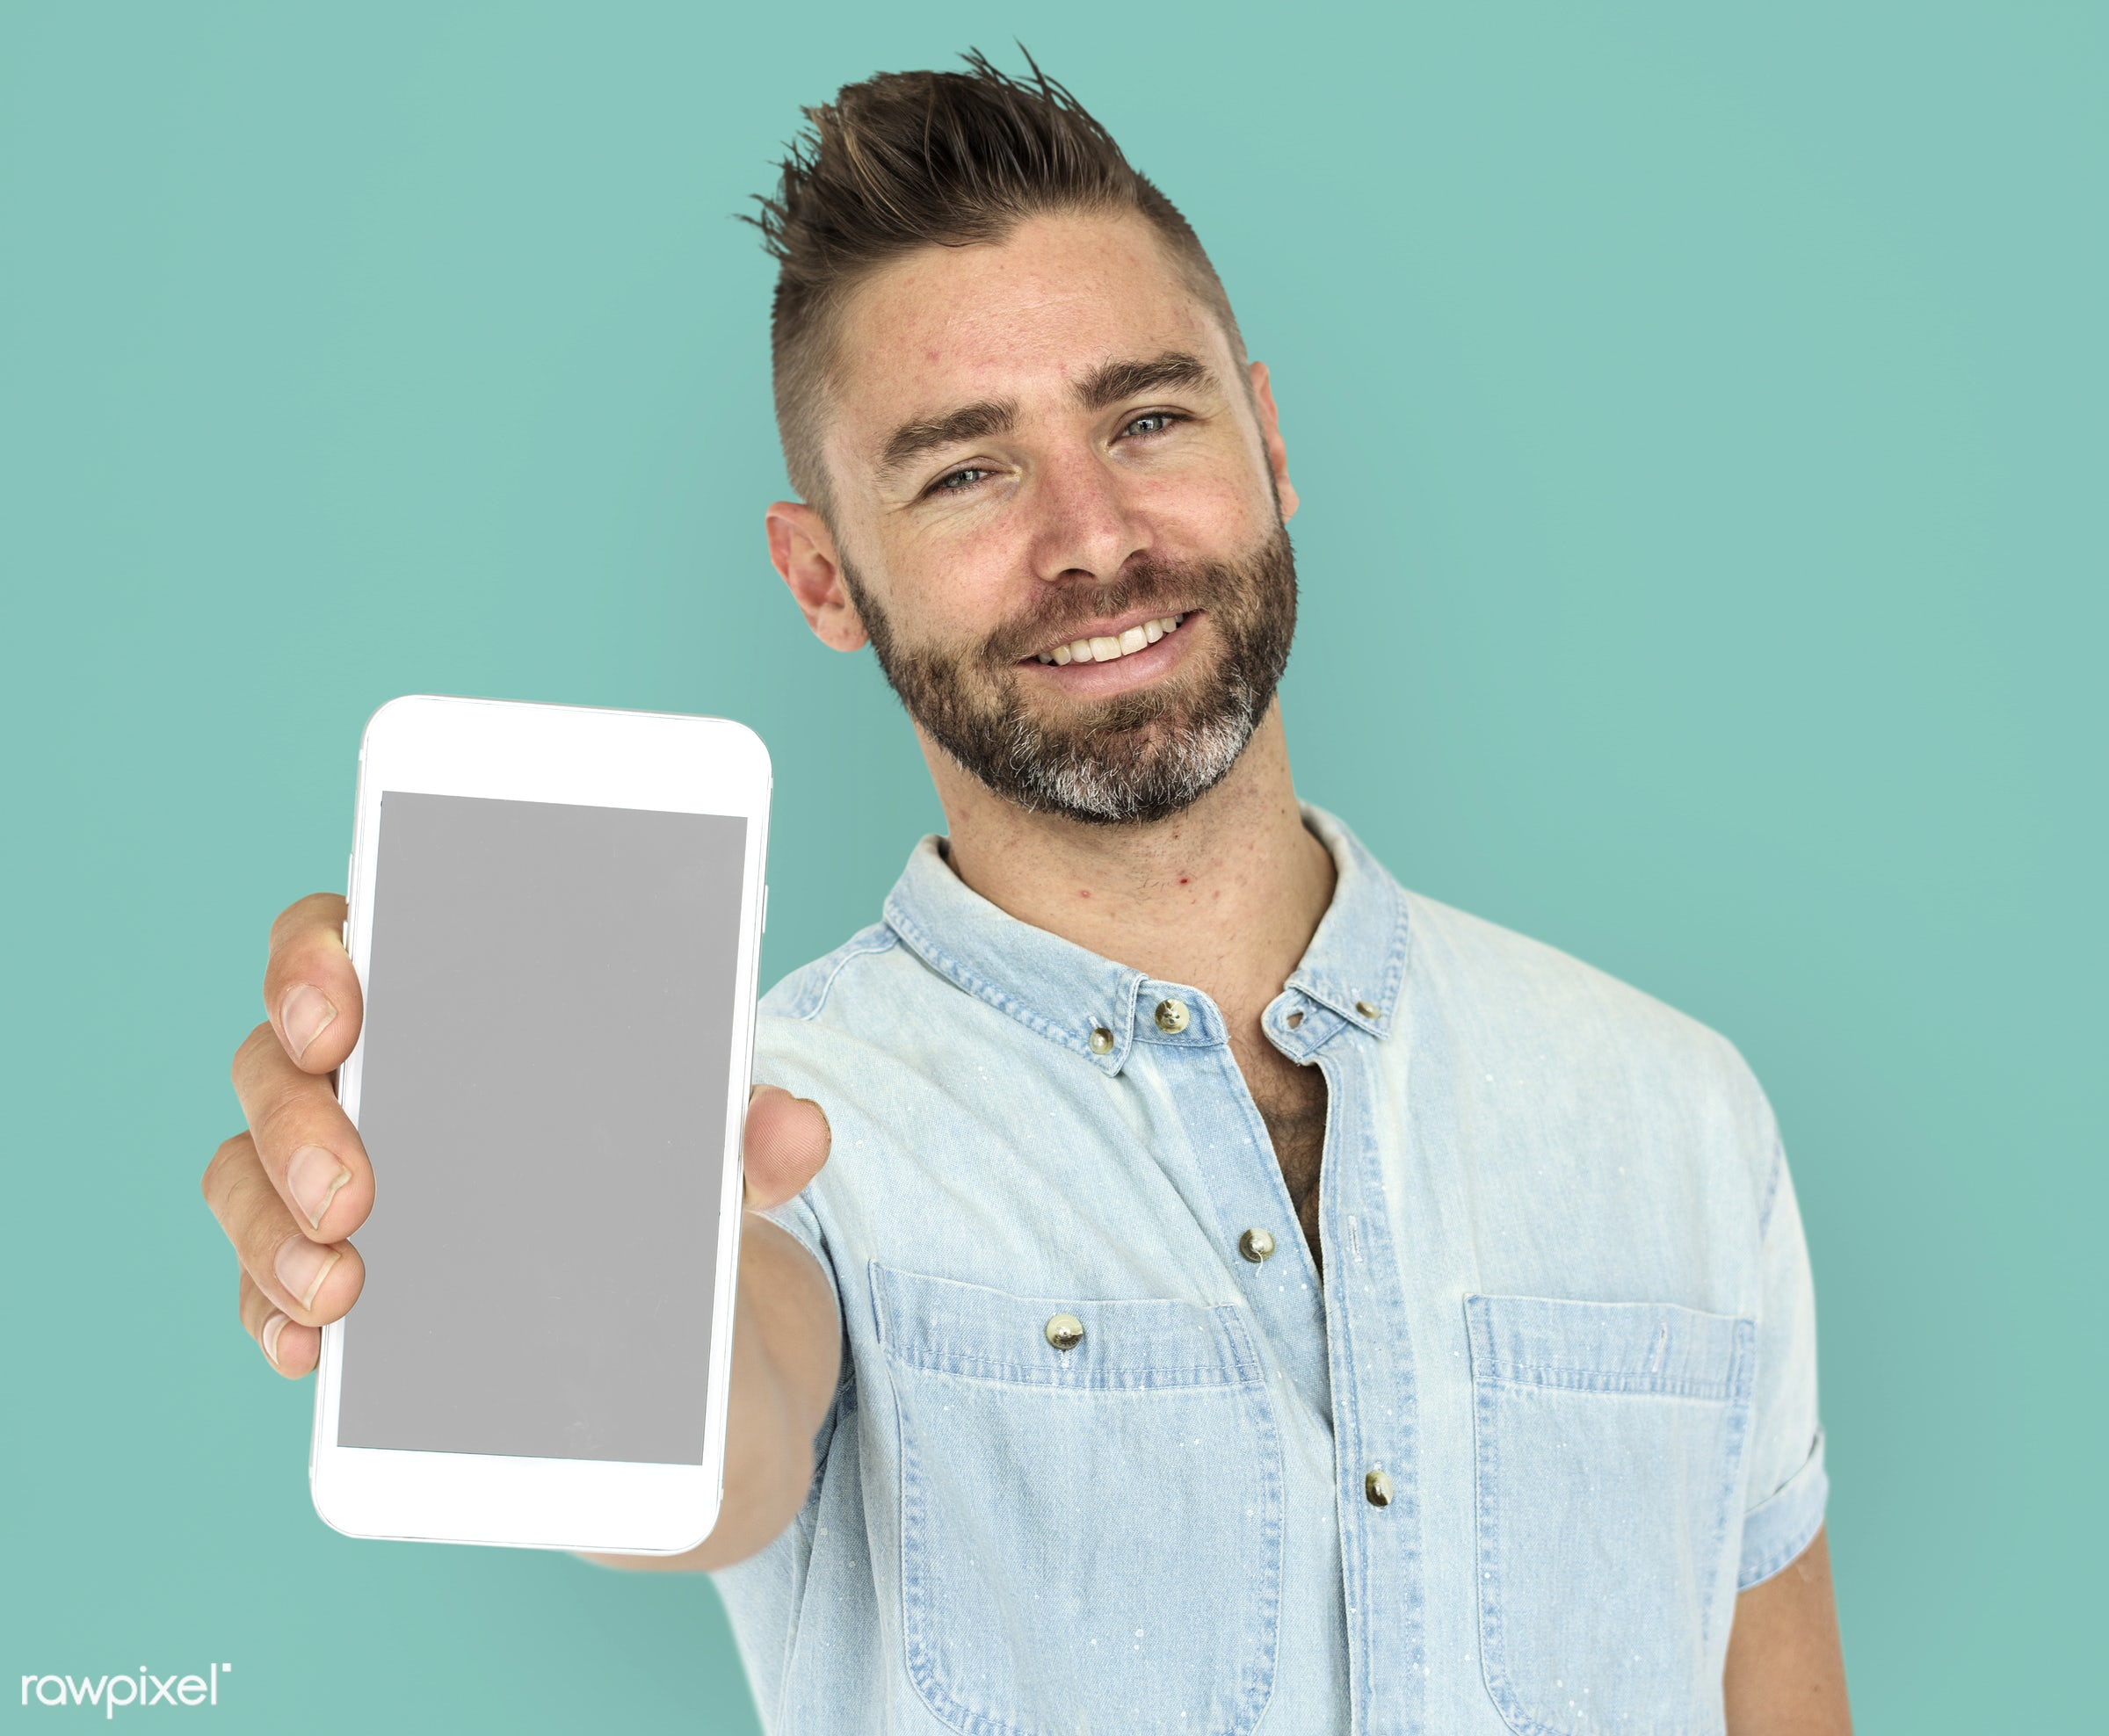 expression, studio, person, phone, portable, technology, holding, people, positivity, caucasian, mobile phone, positive,...